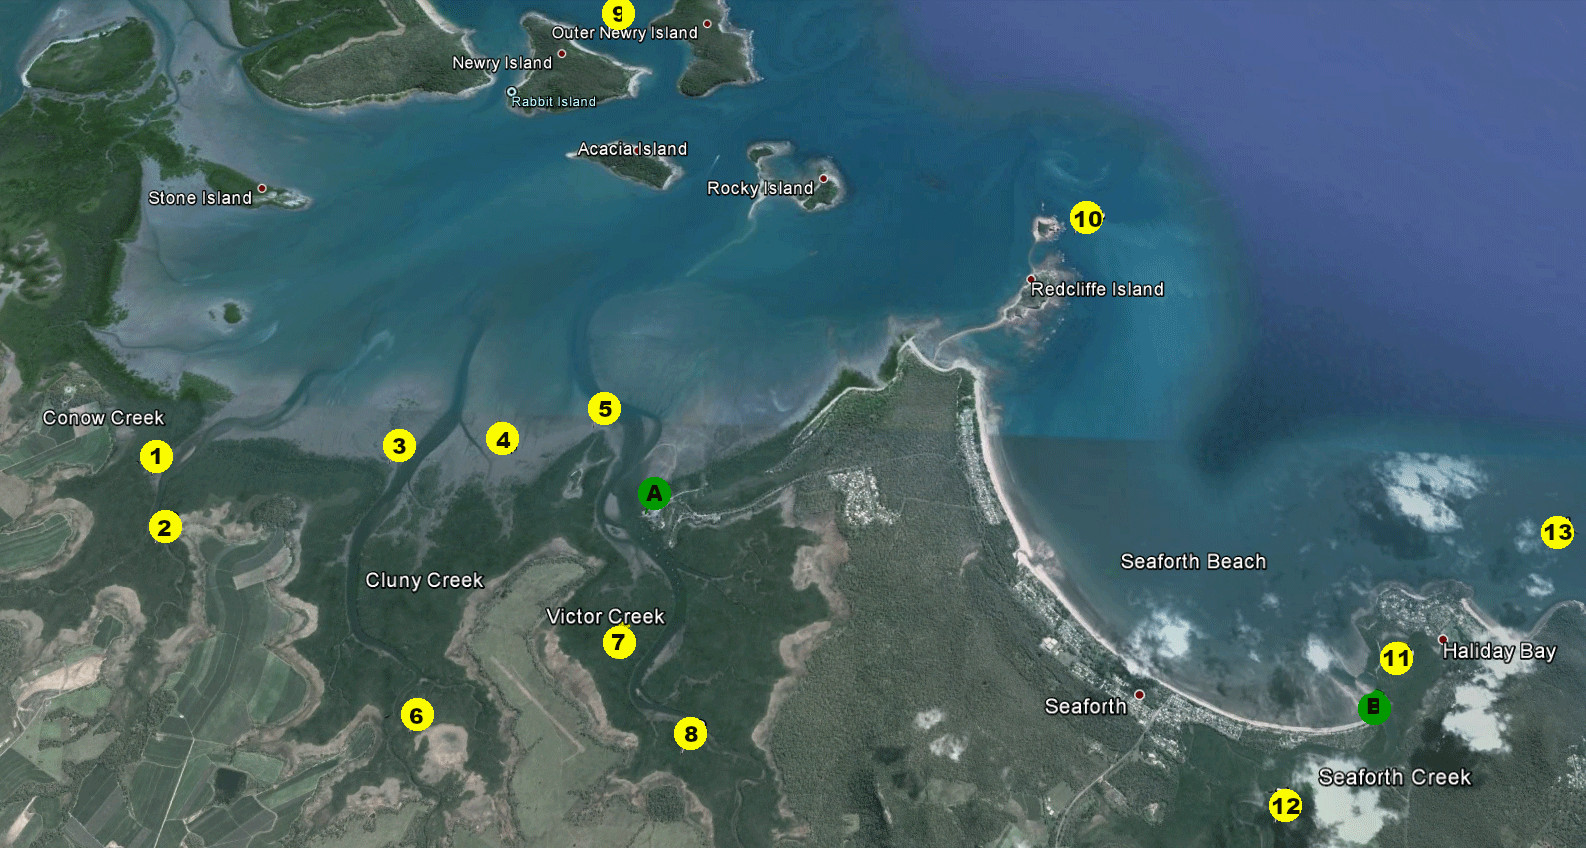 Seaforth fishing spots - see the text